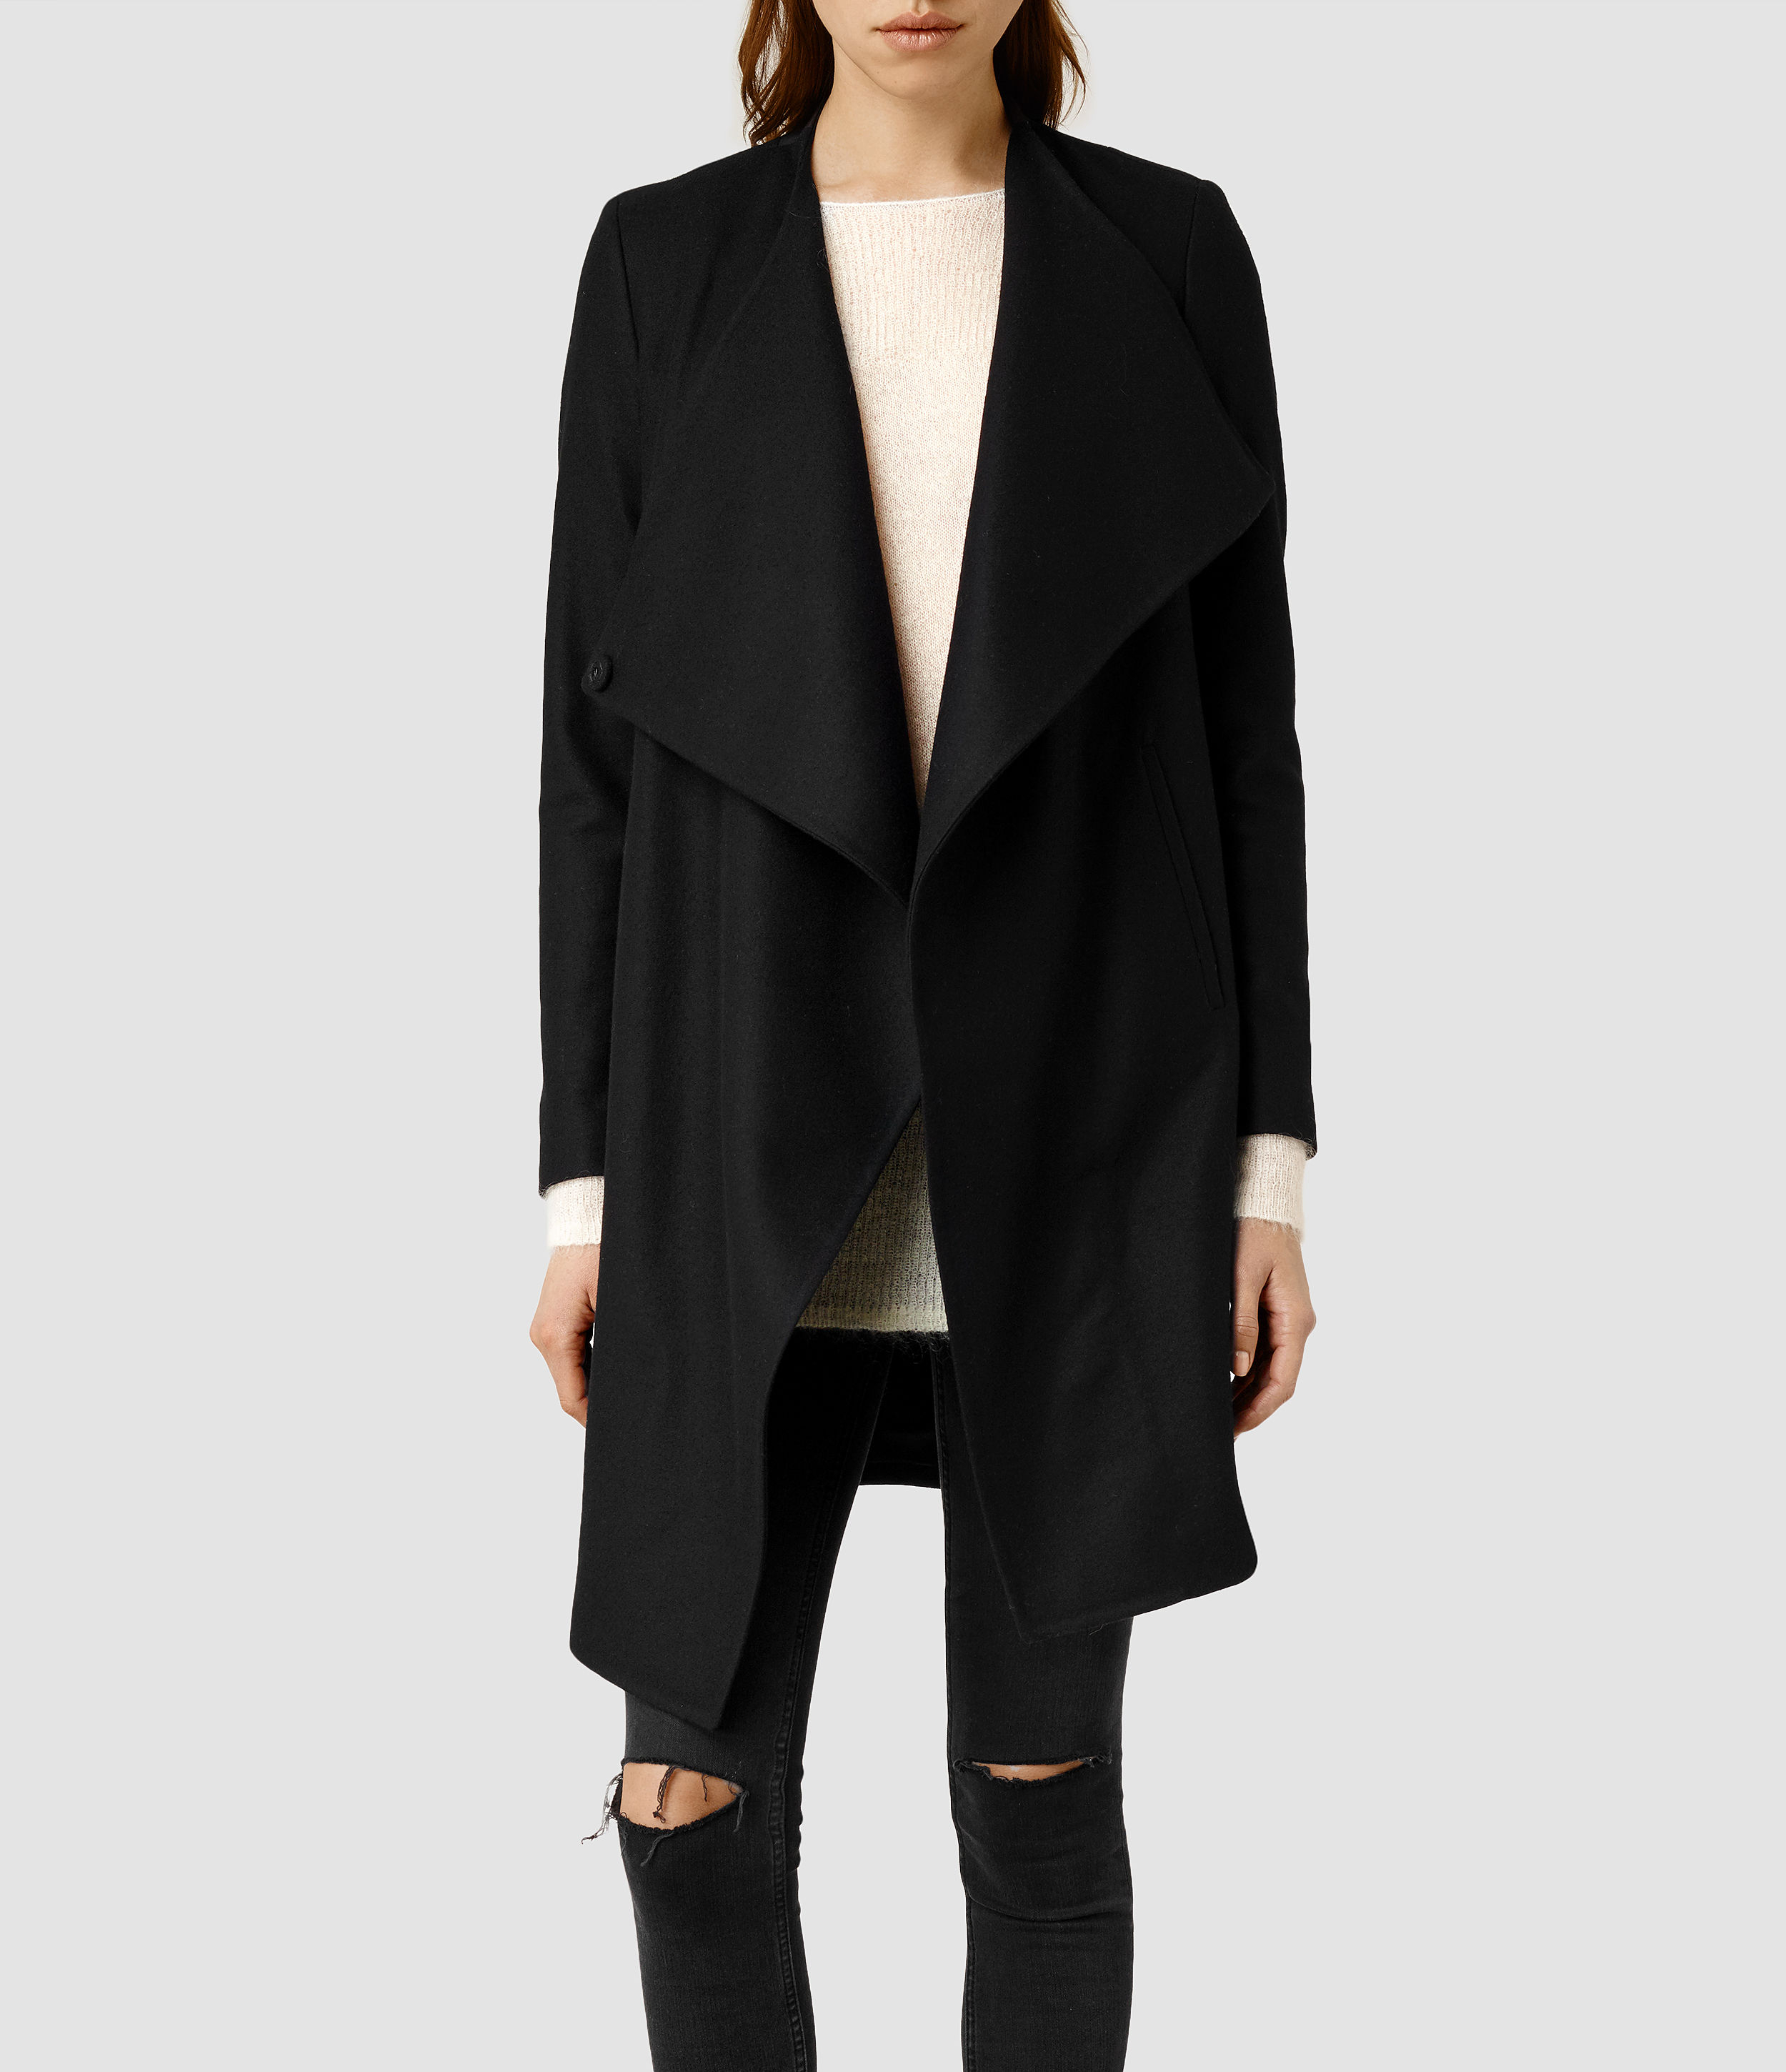 Allsaints Ora Coat in Black | Lyst